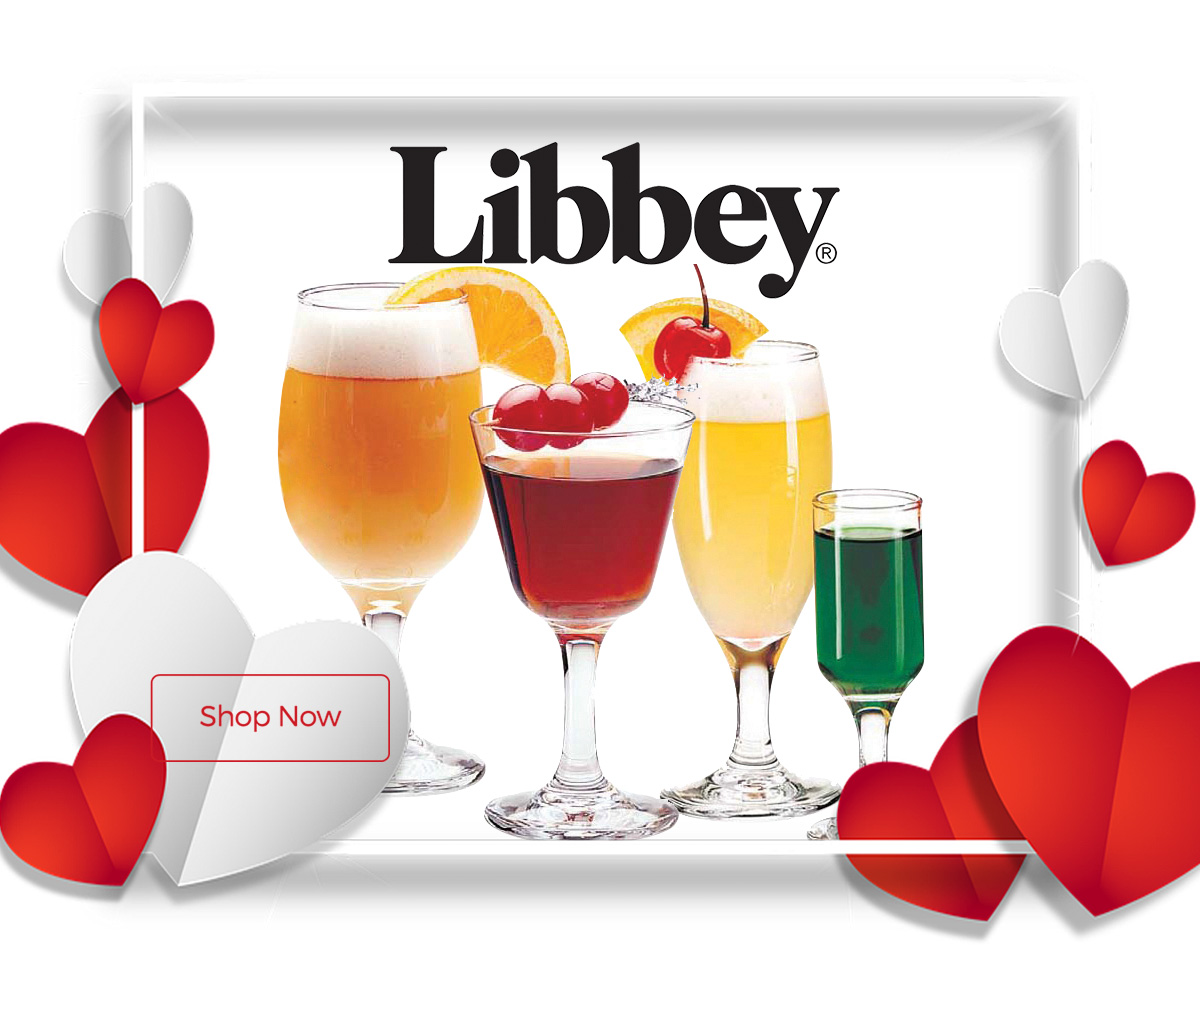 Libbey now 10% off for a limited time only!